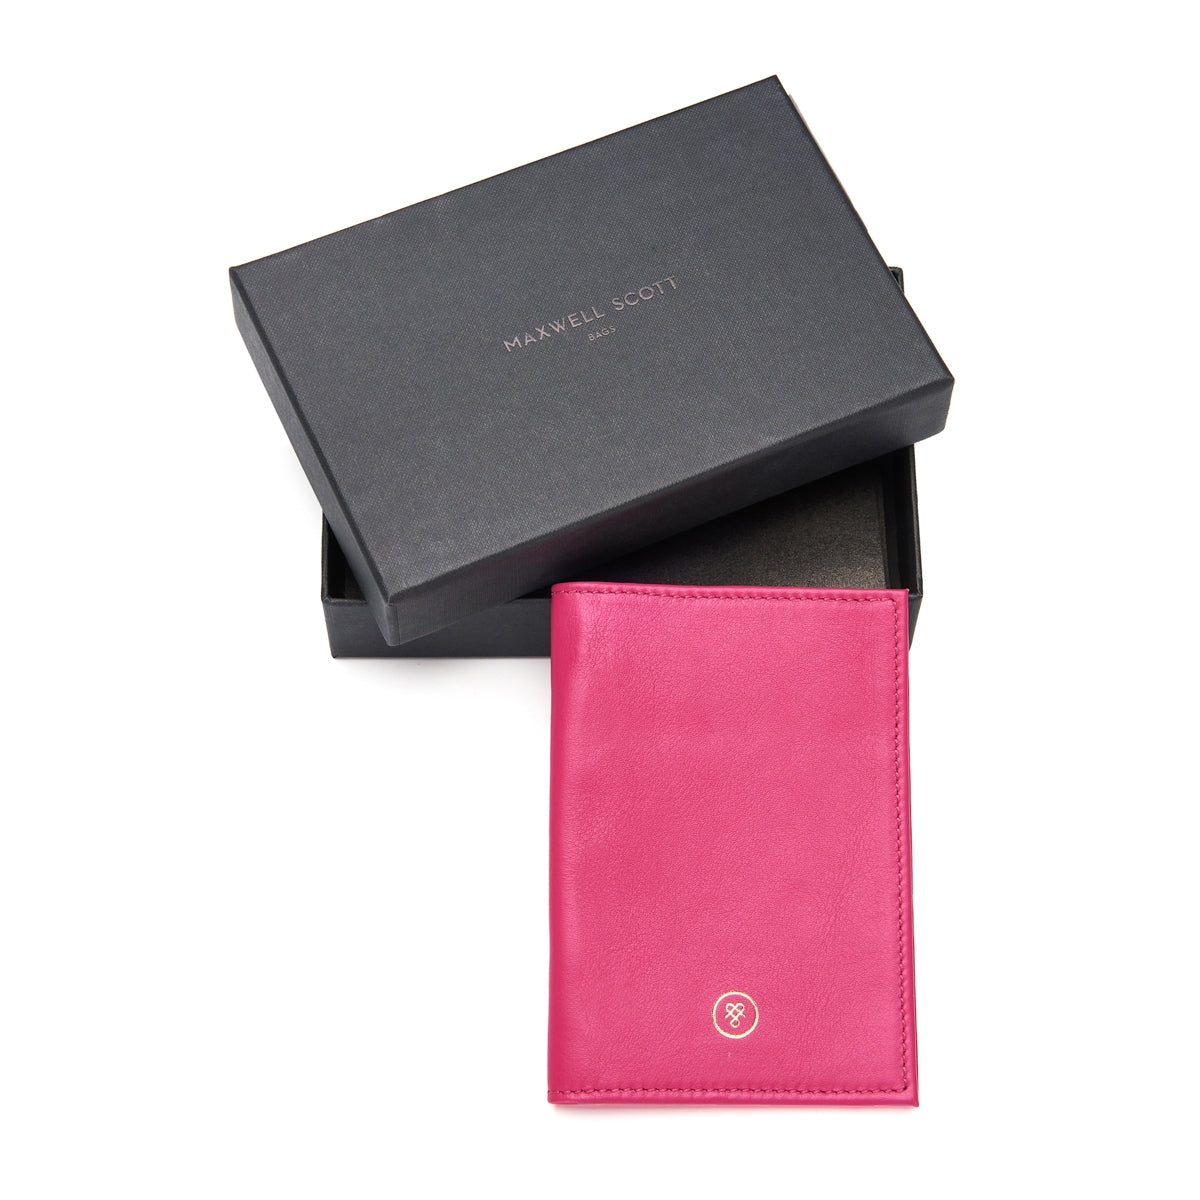 Image 6 of the 'Prato' Luxury Leather Passport Holder